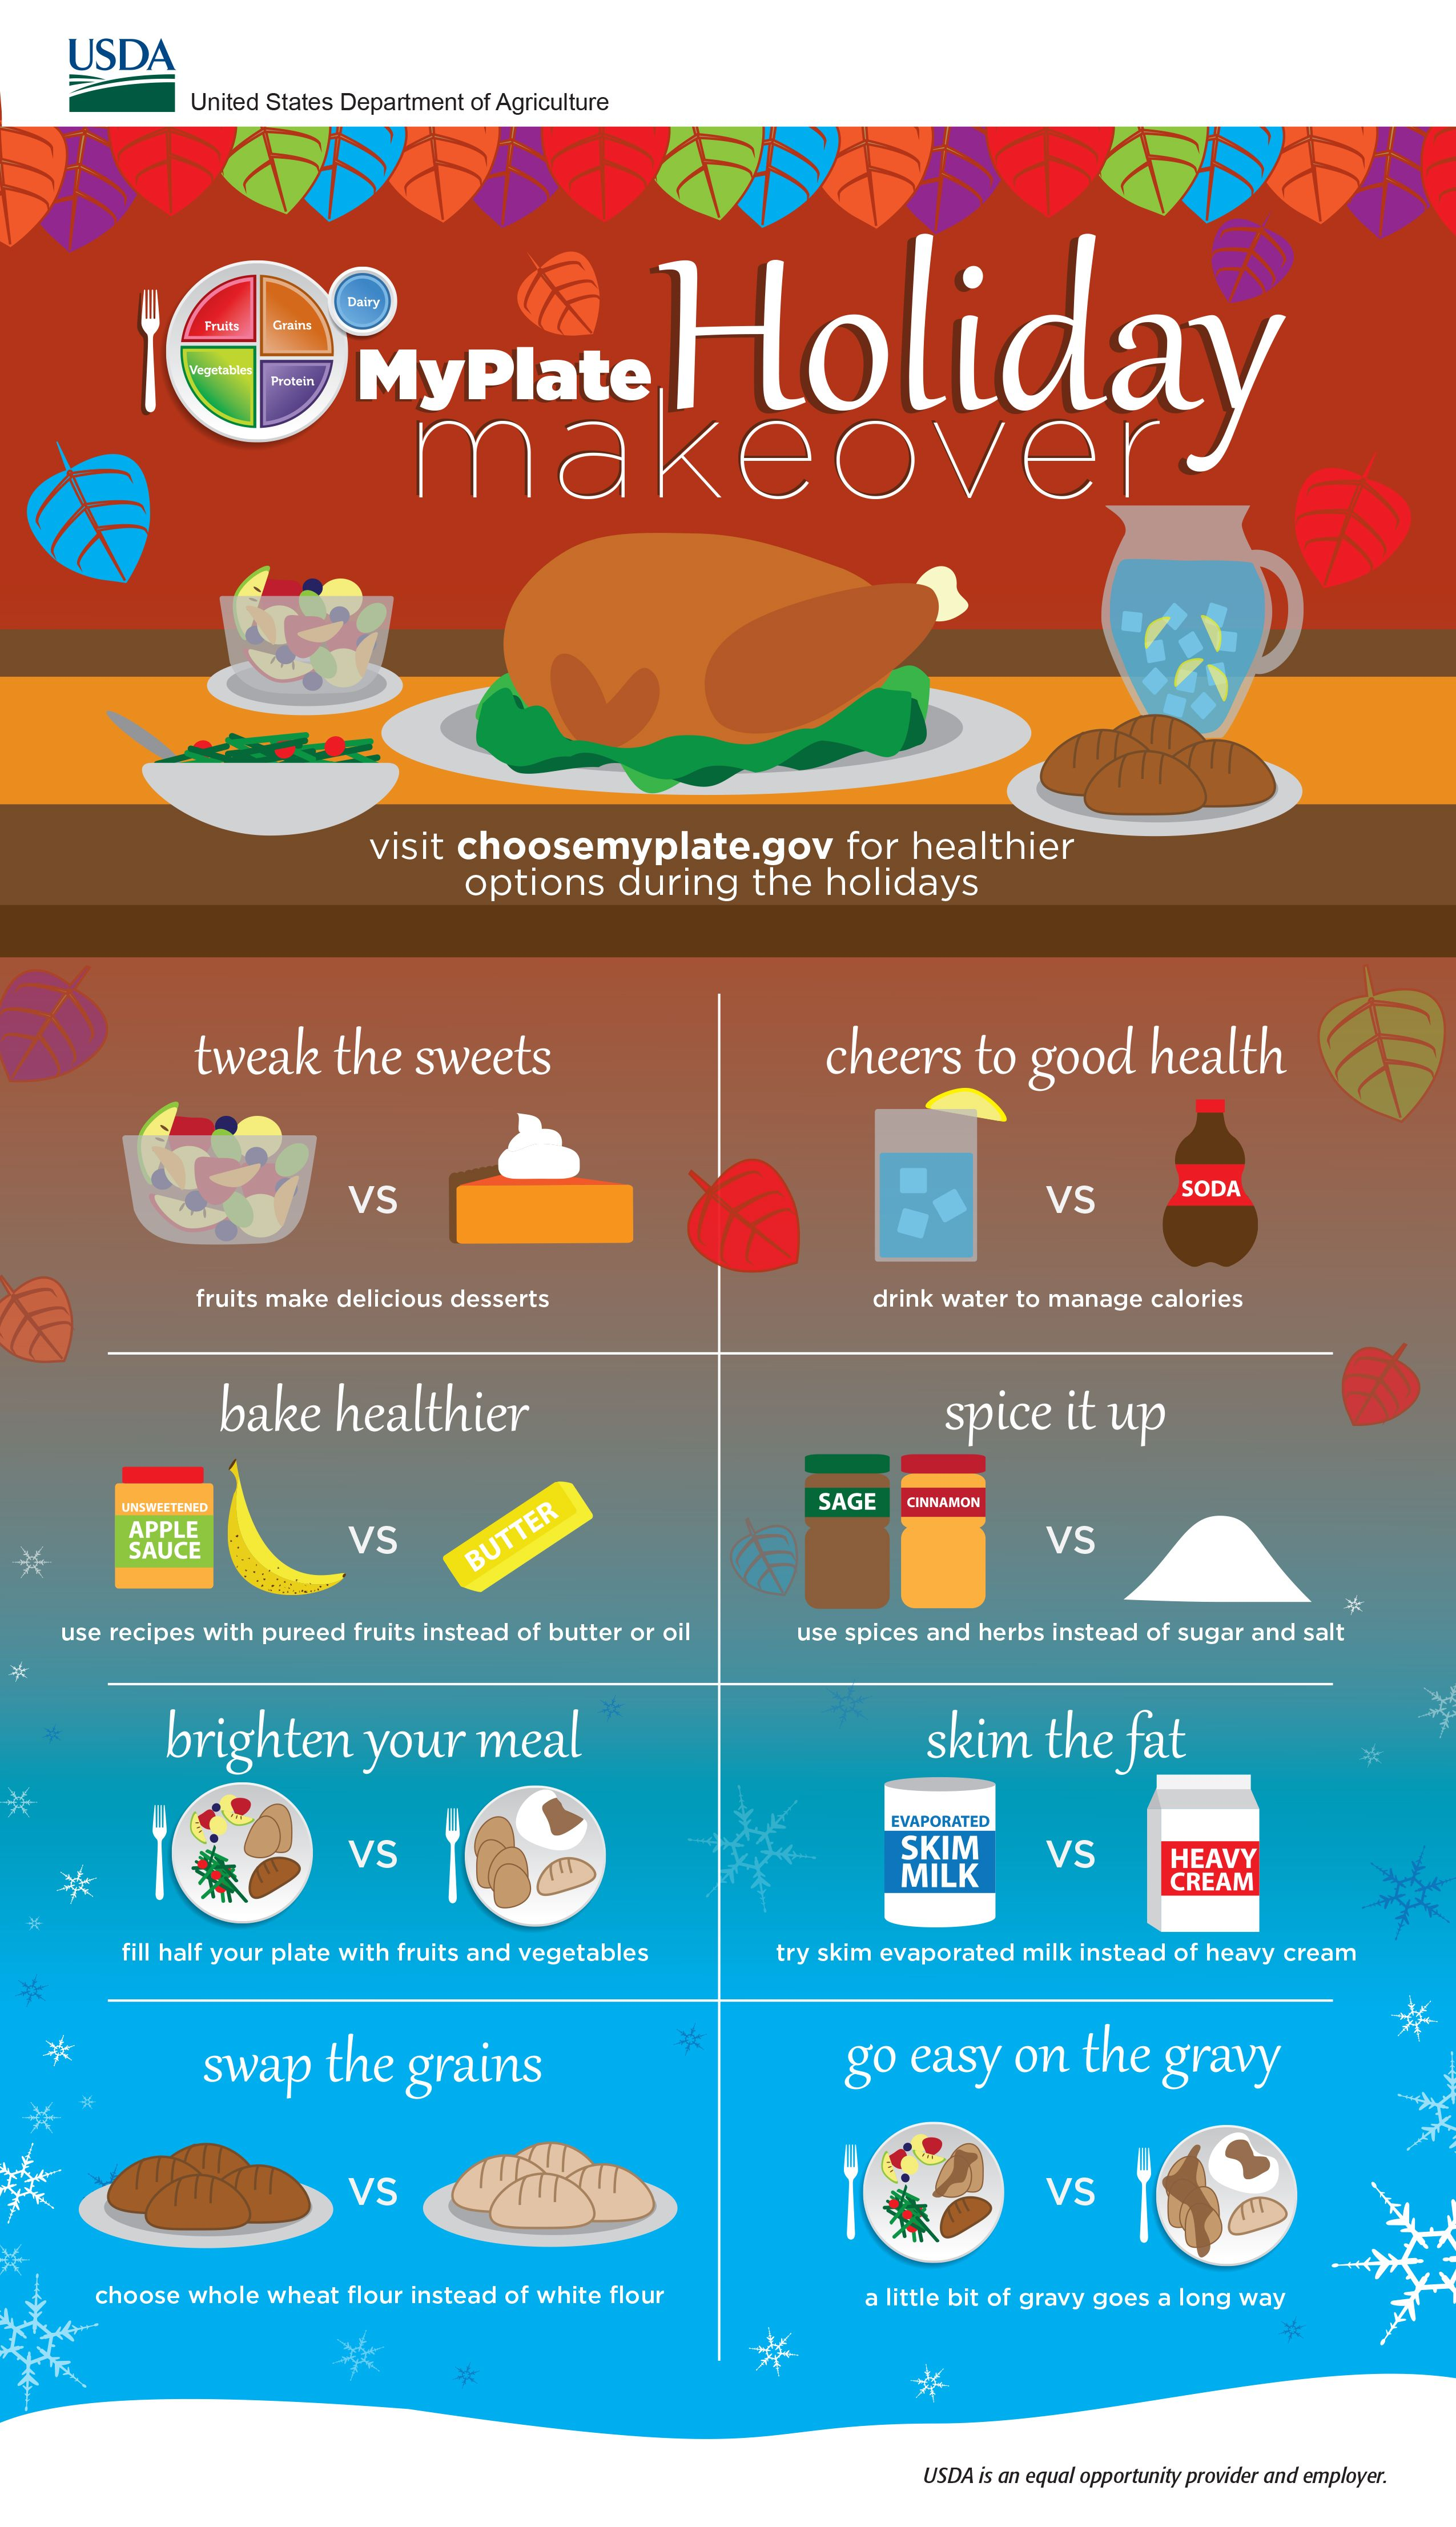 Healthy Holiday Food Options from USDA s ChooseMyPlate